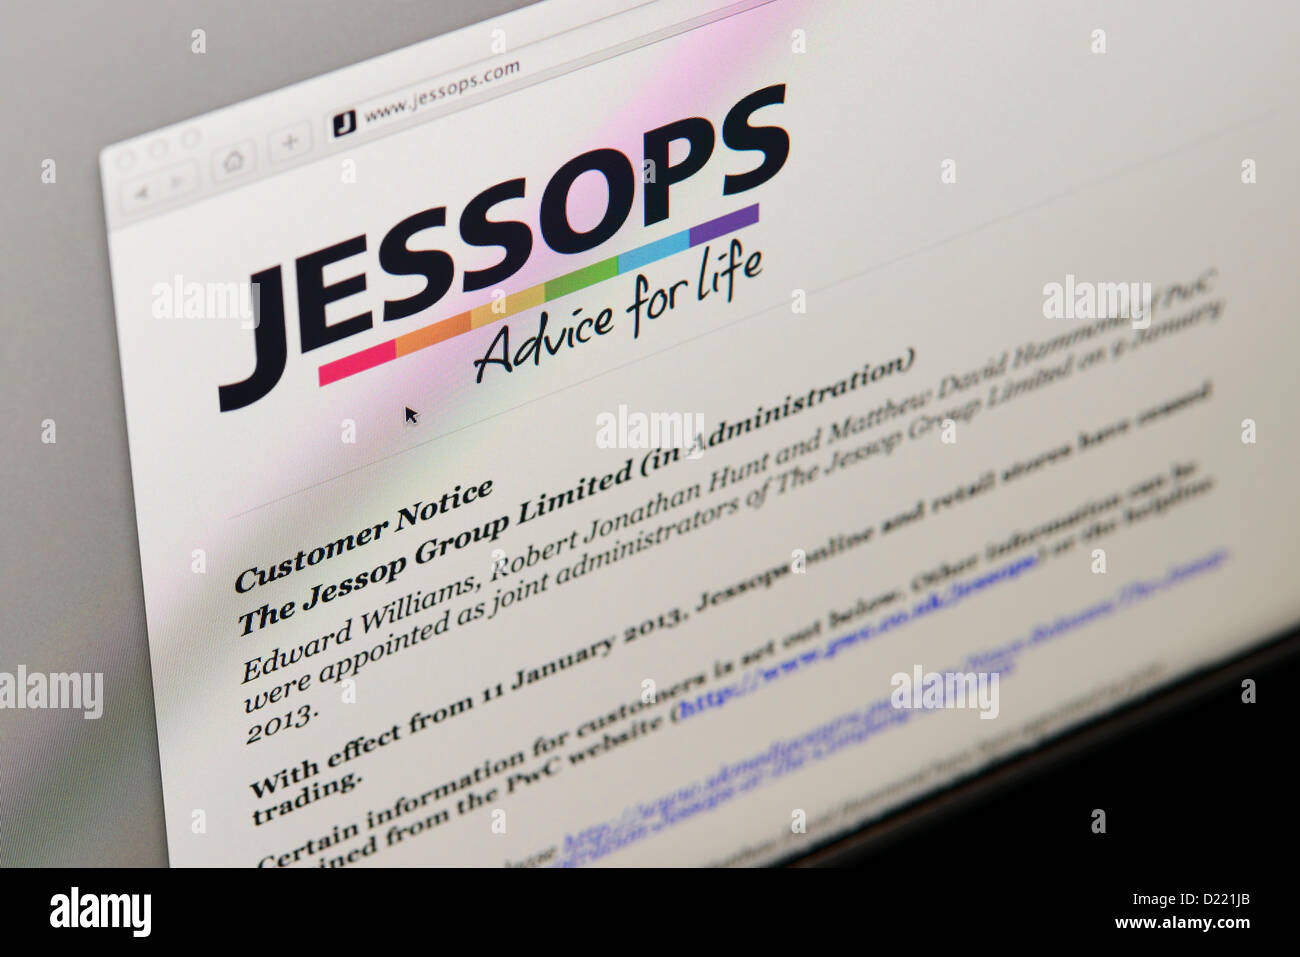 The website of Jessops, the UK High Street camera retail chain which today ceased trading. - Stock Image